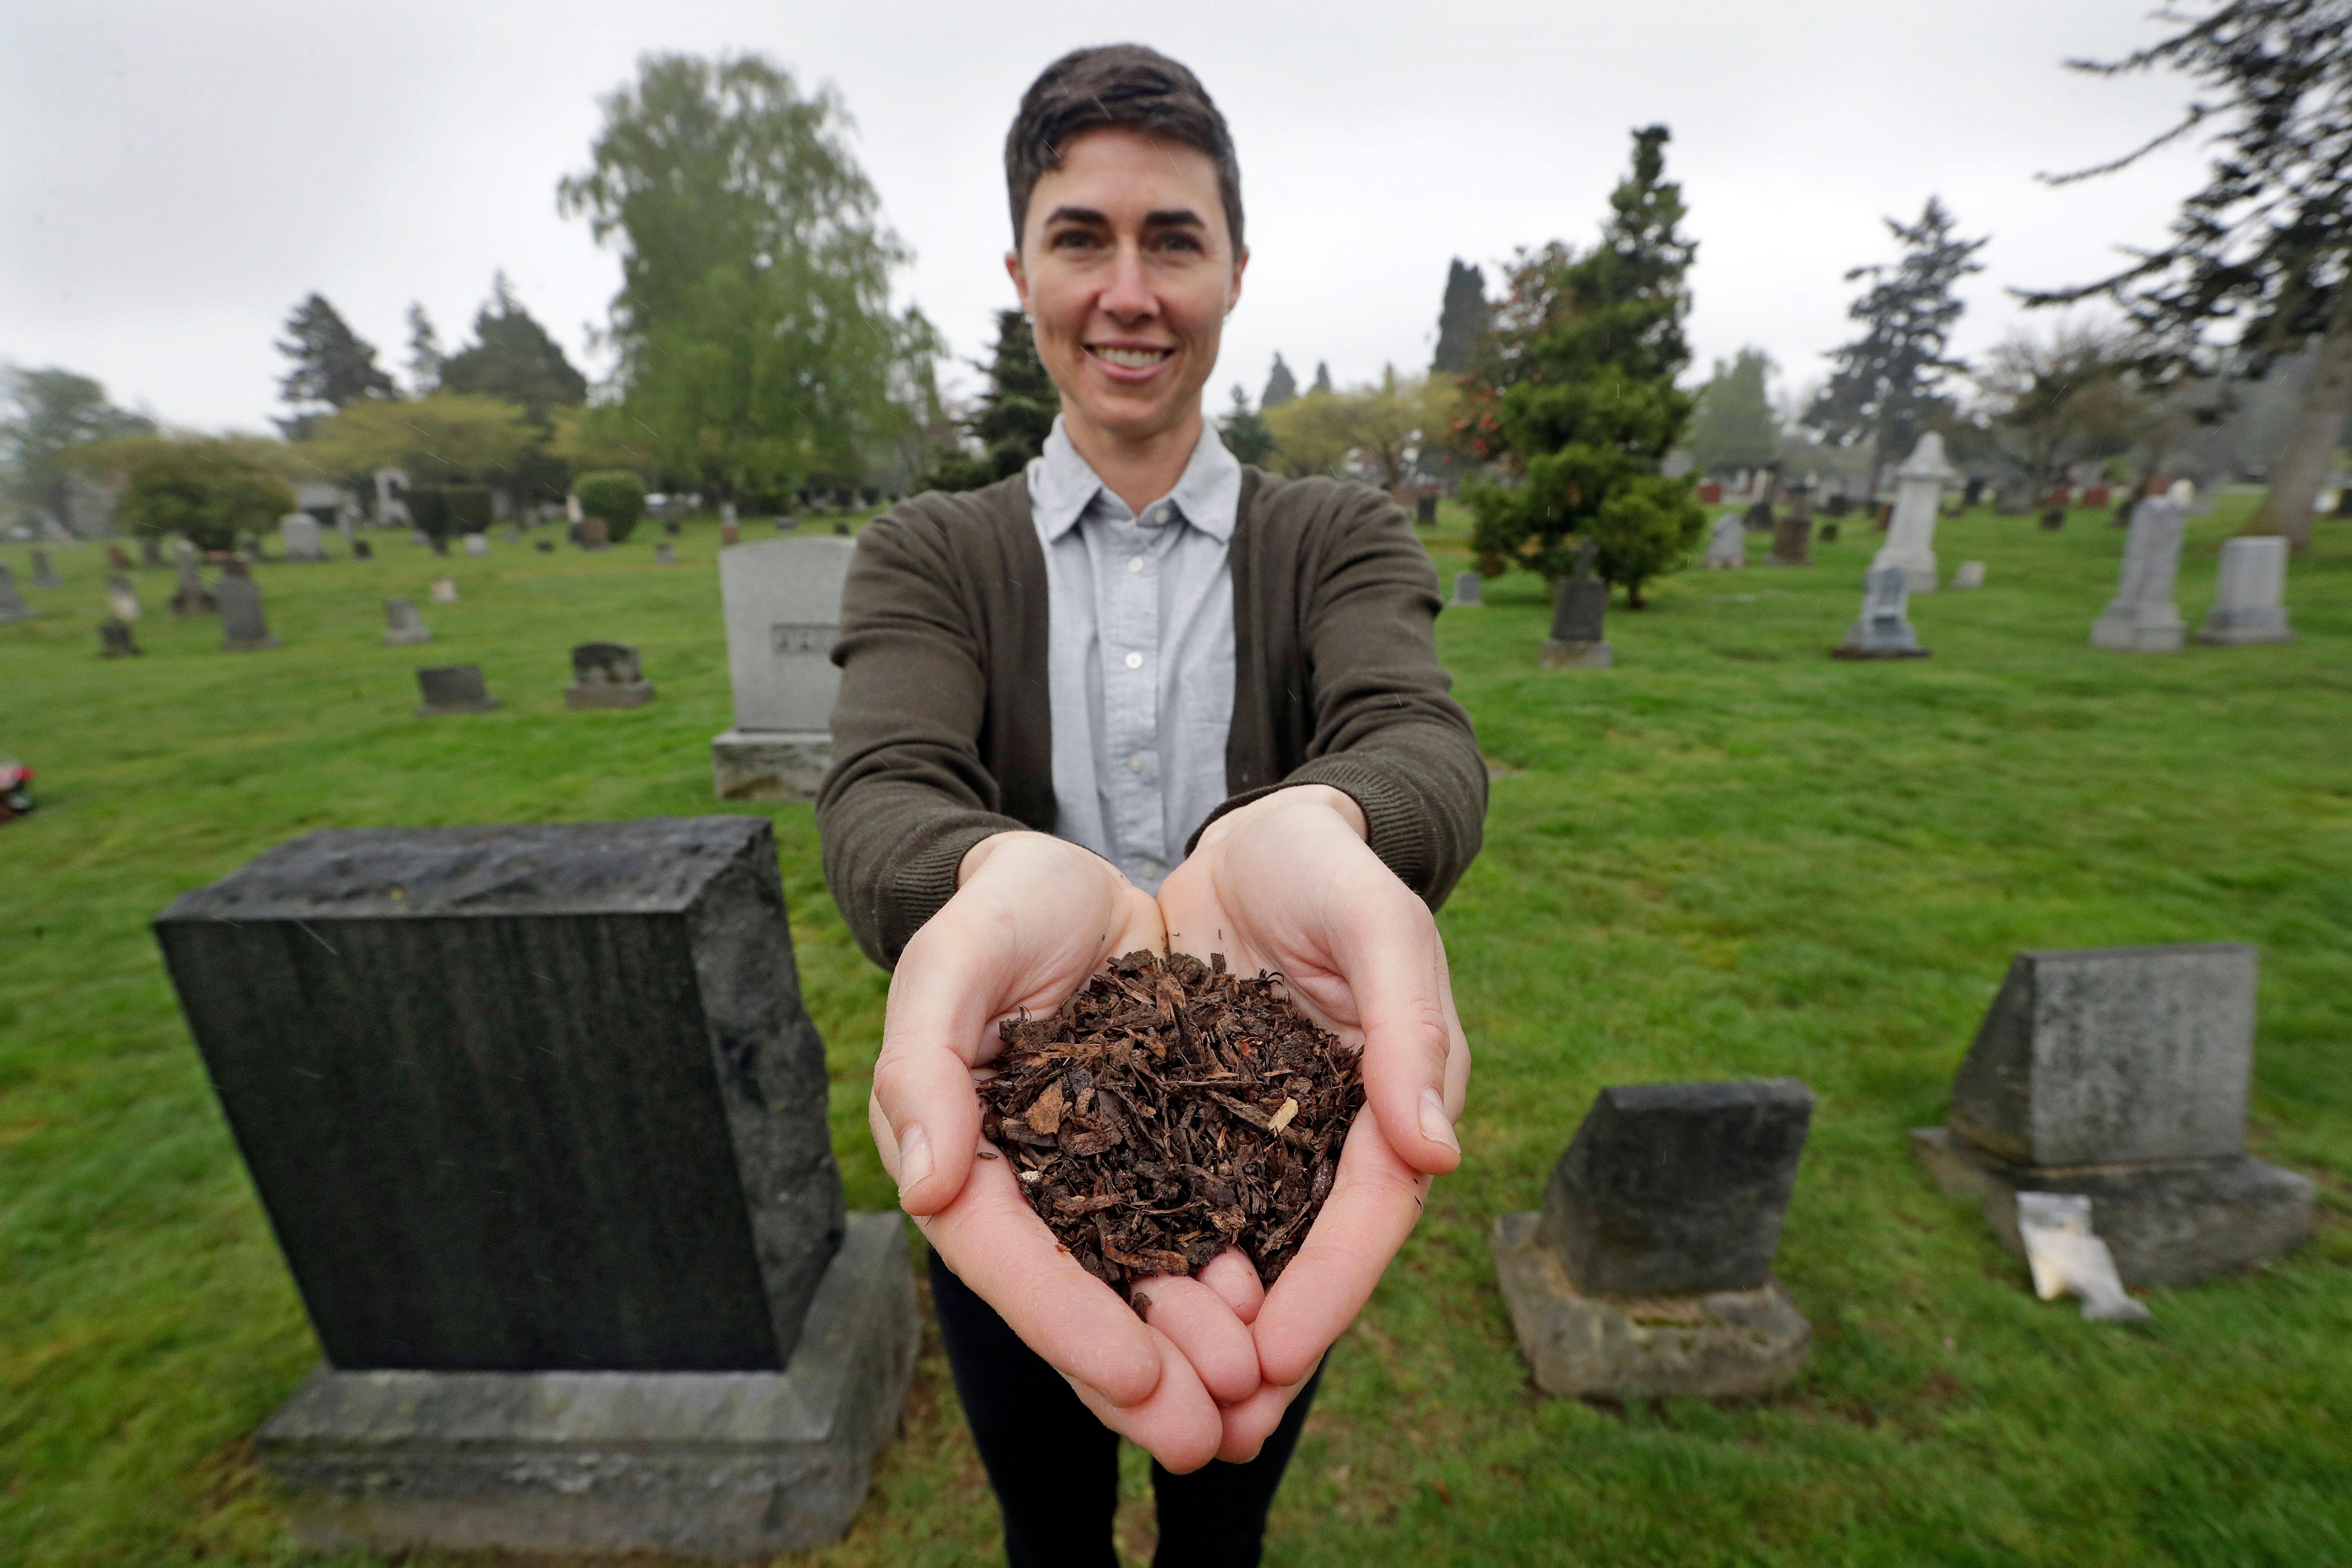 Turning loved ones into soil? Washington becomes first state to allow human composting